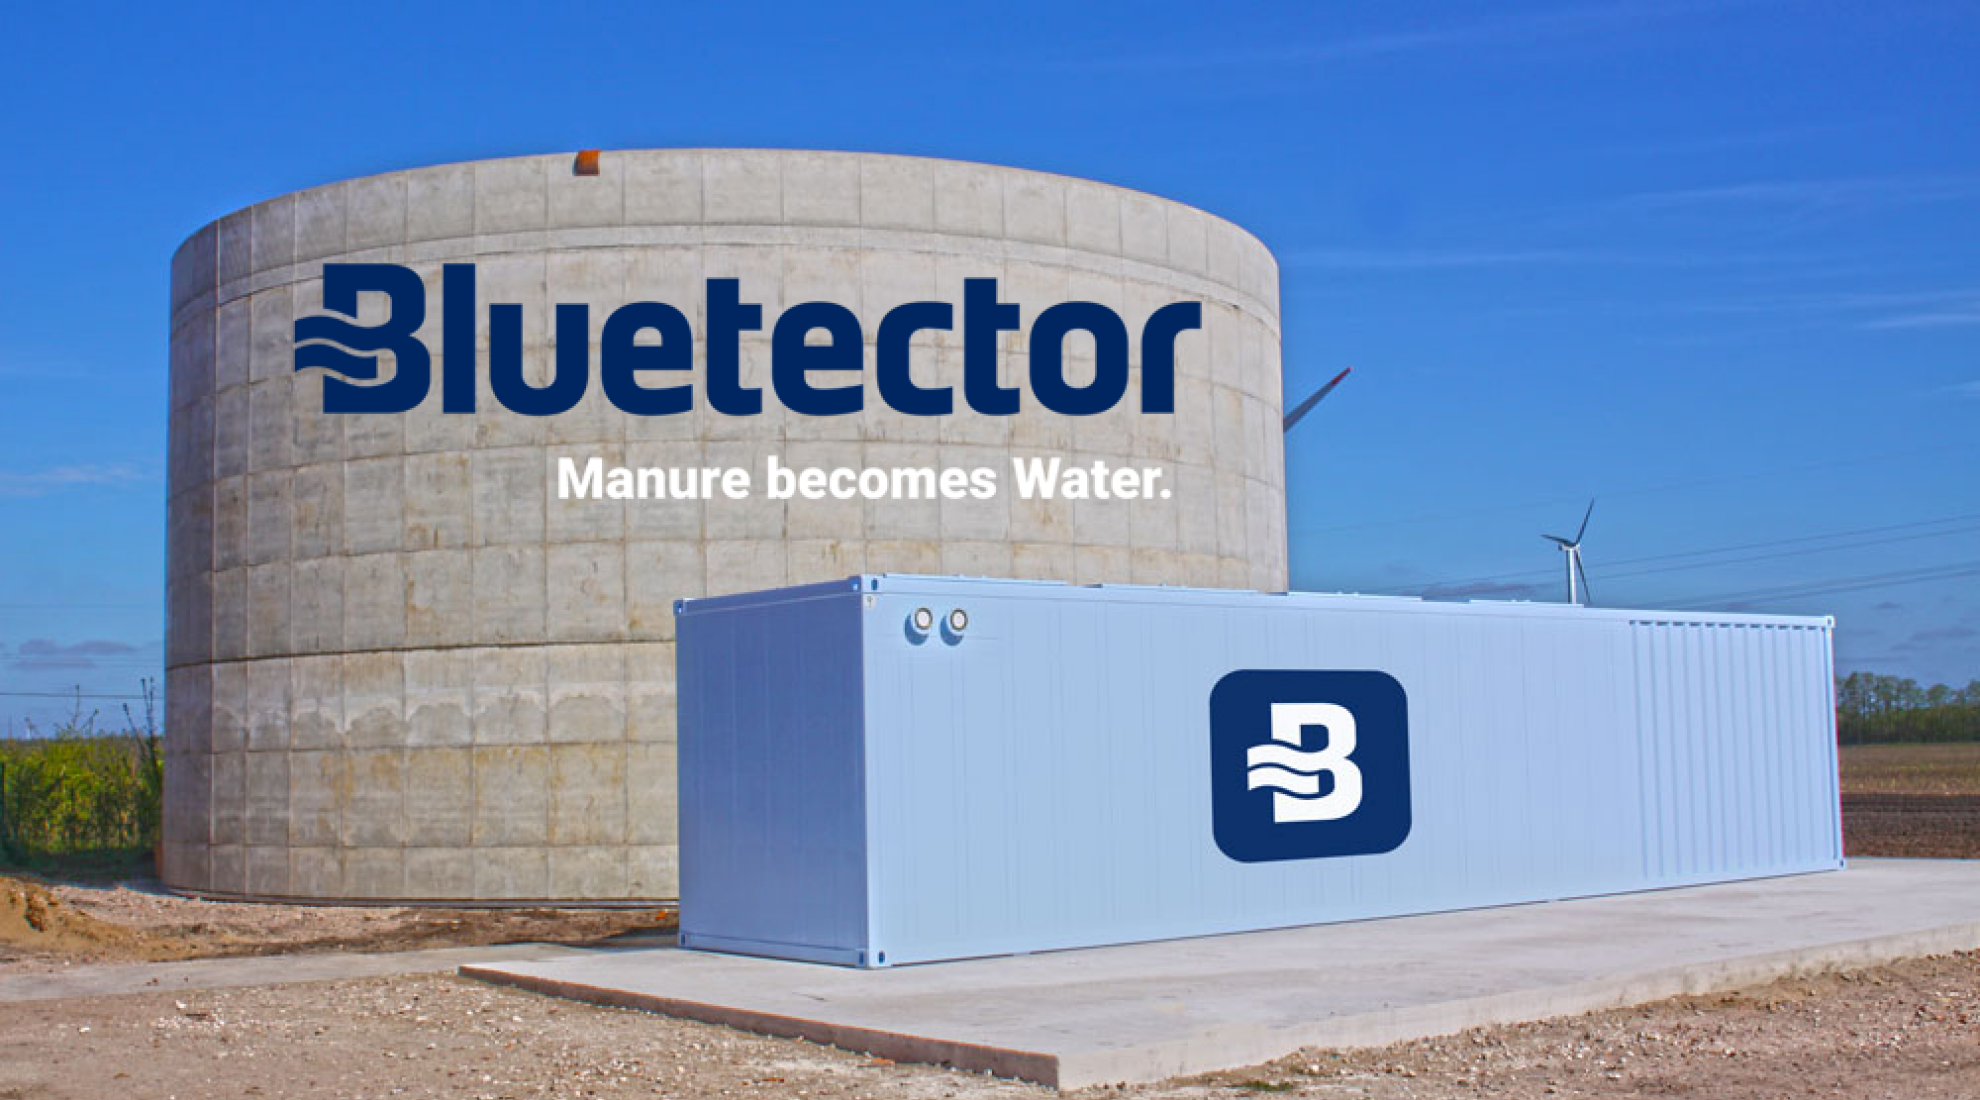 Bluetector – Manure becomes Water